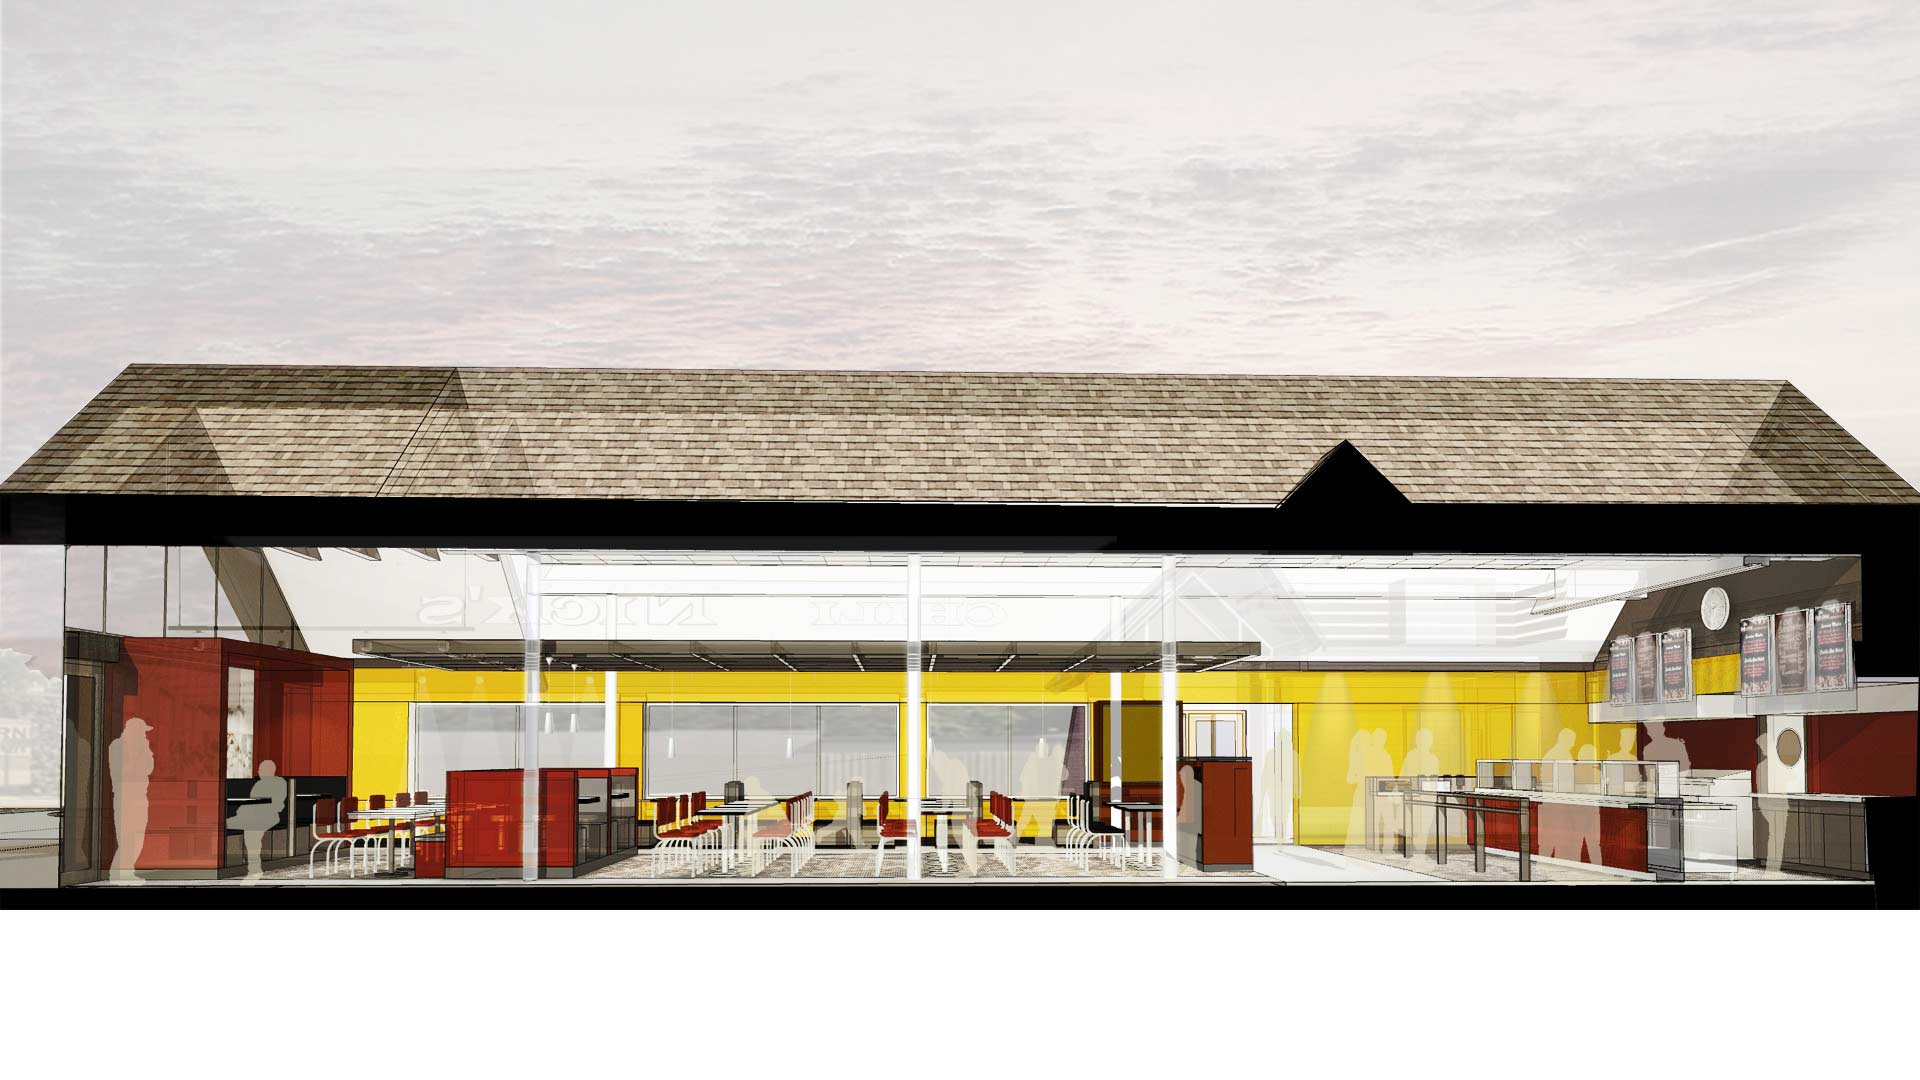 Nick's Chili Parlor Family Restaurant- Design Process Section Study - HAUS Architecture, Christopher Short, Indianapolis Architect